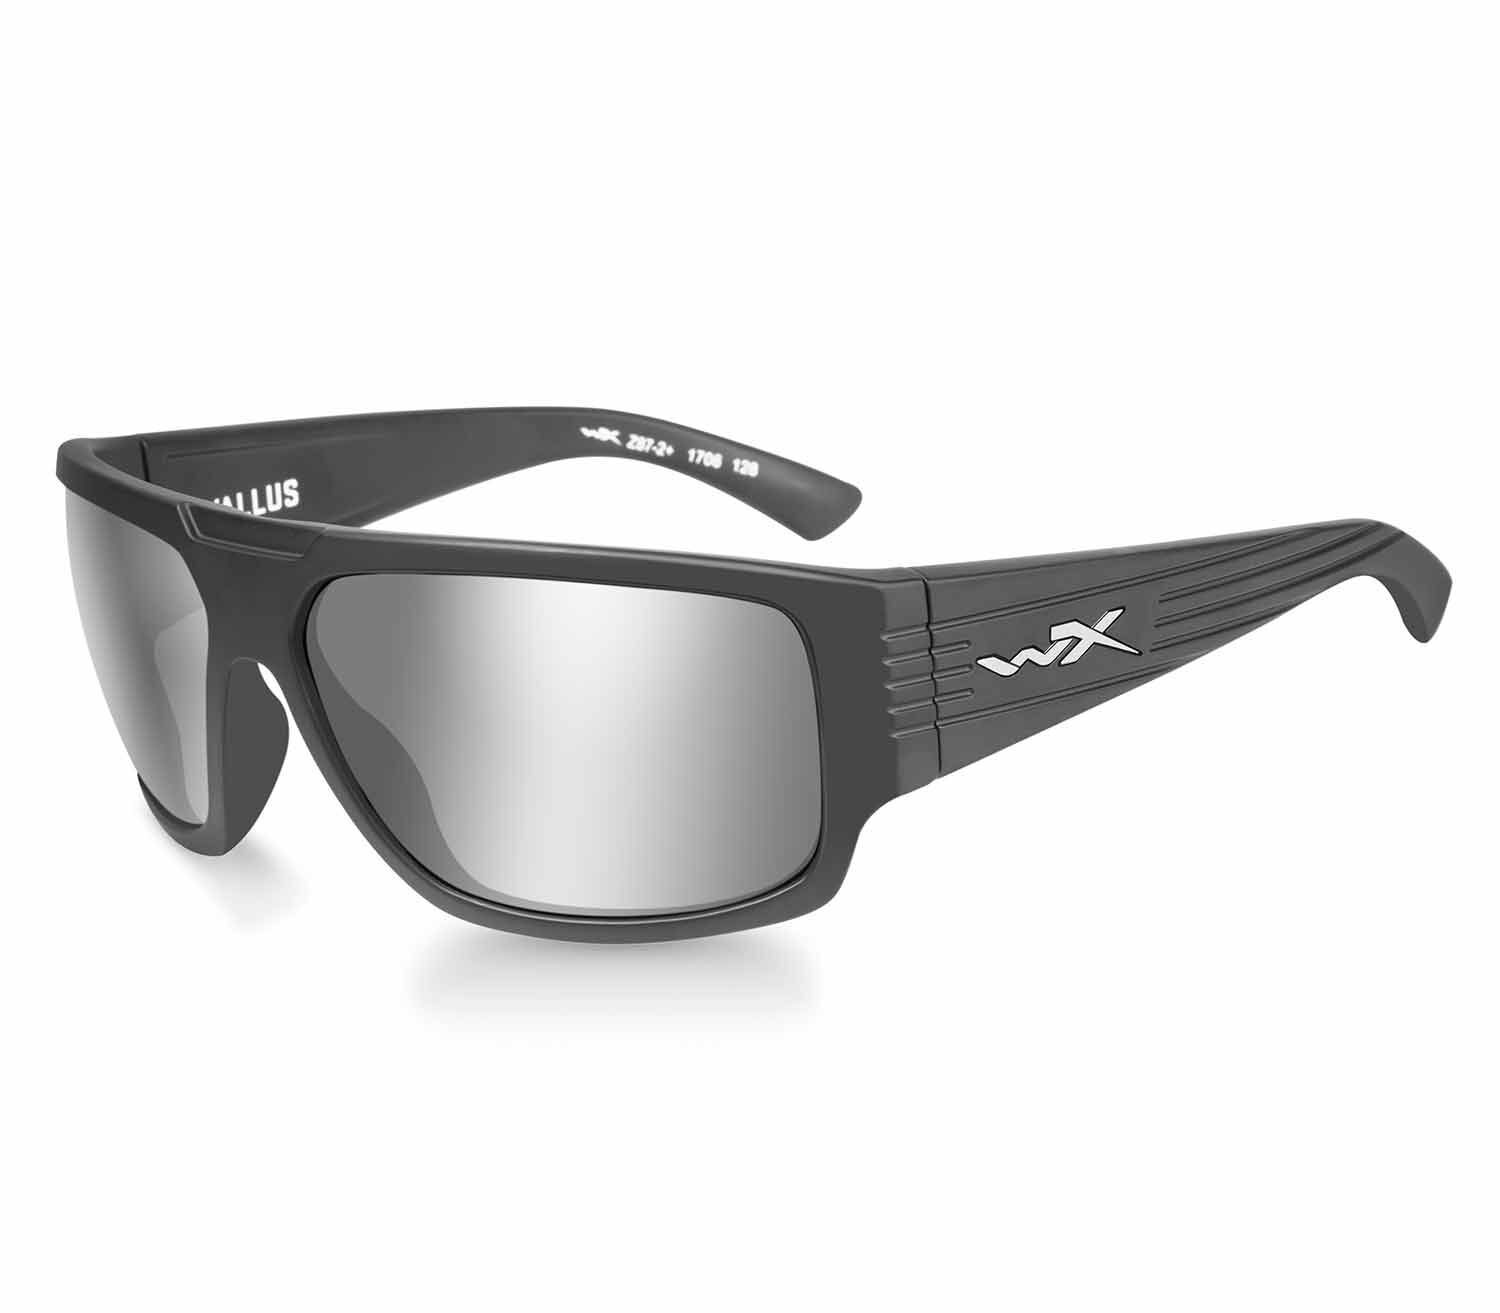 Gafas Wiley X Vallus principal